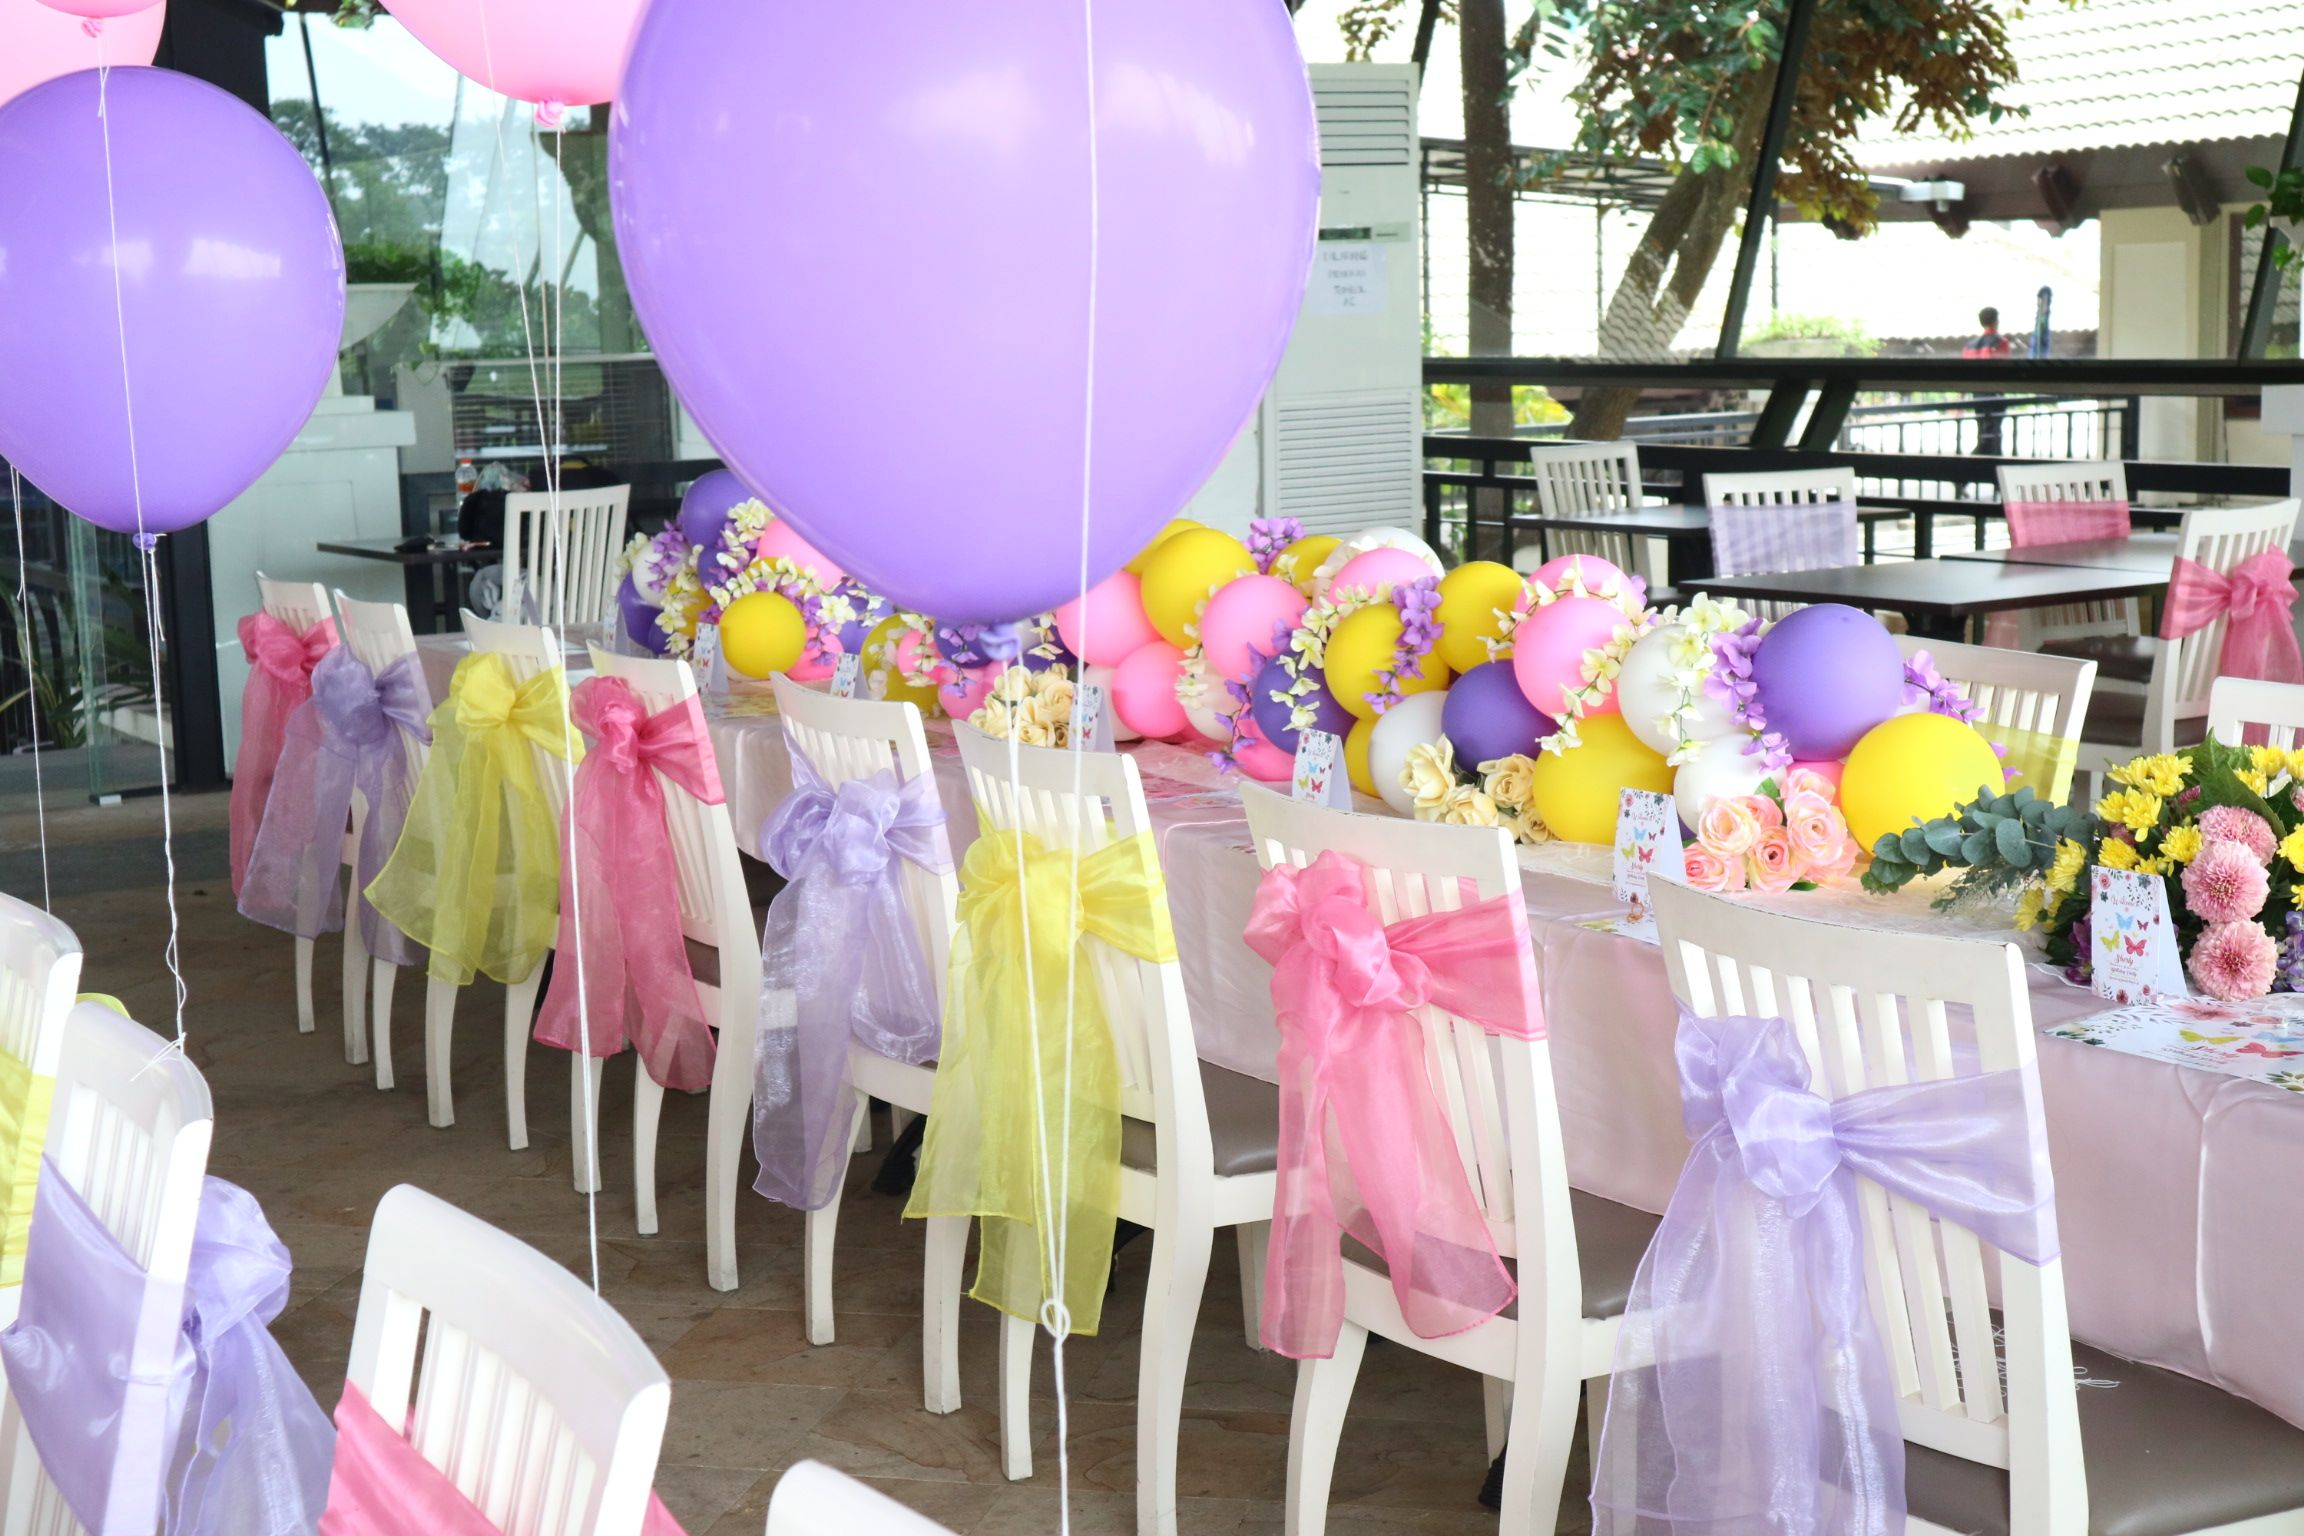 Balloon garland for centerpiece decoration by Charis decoration